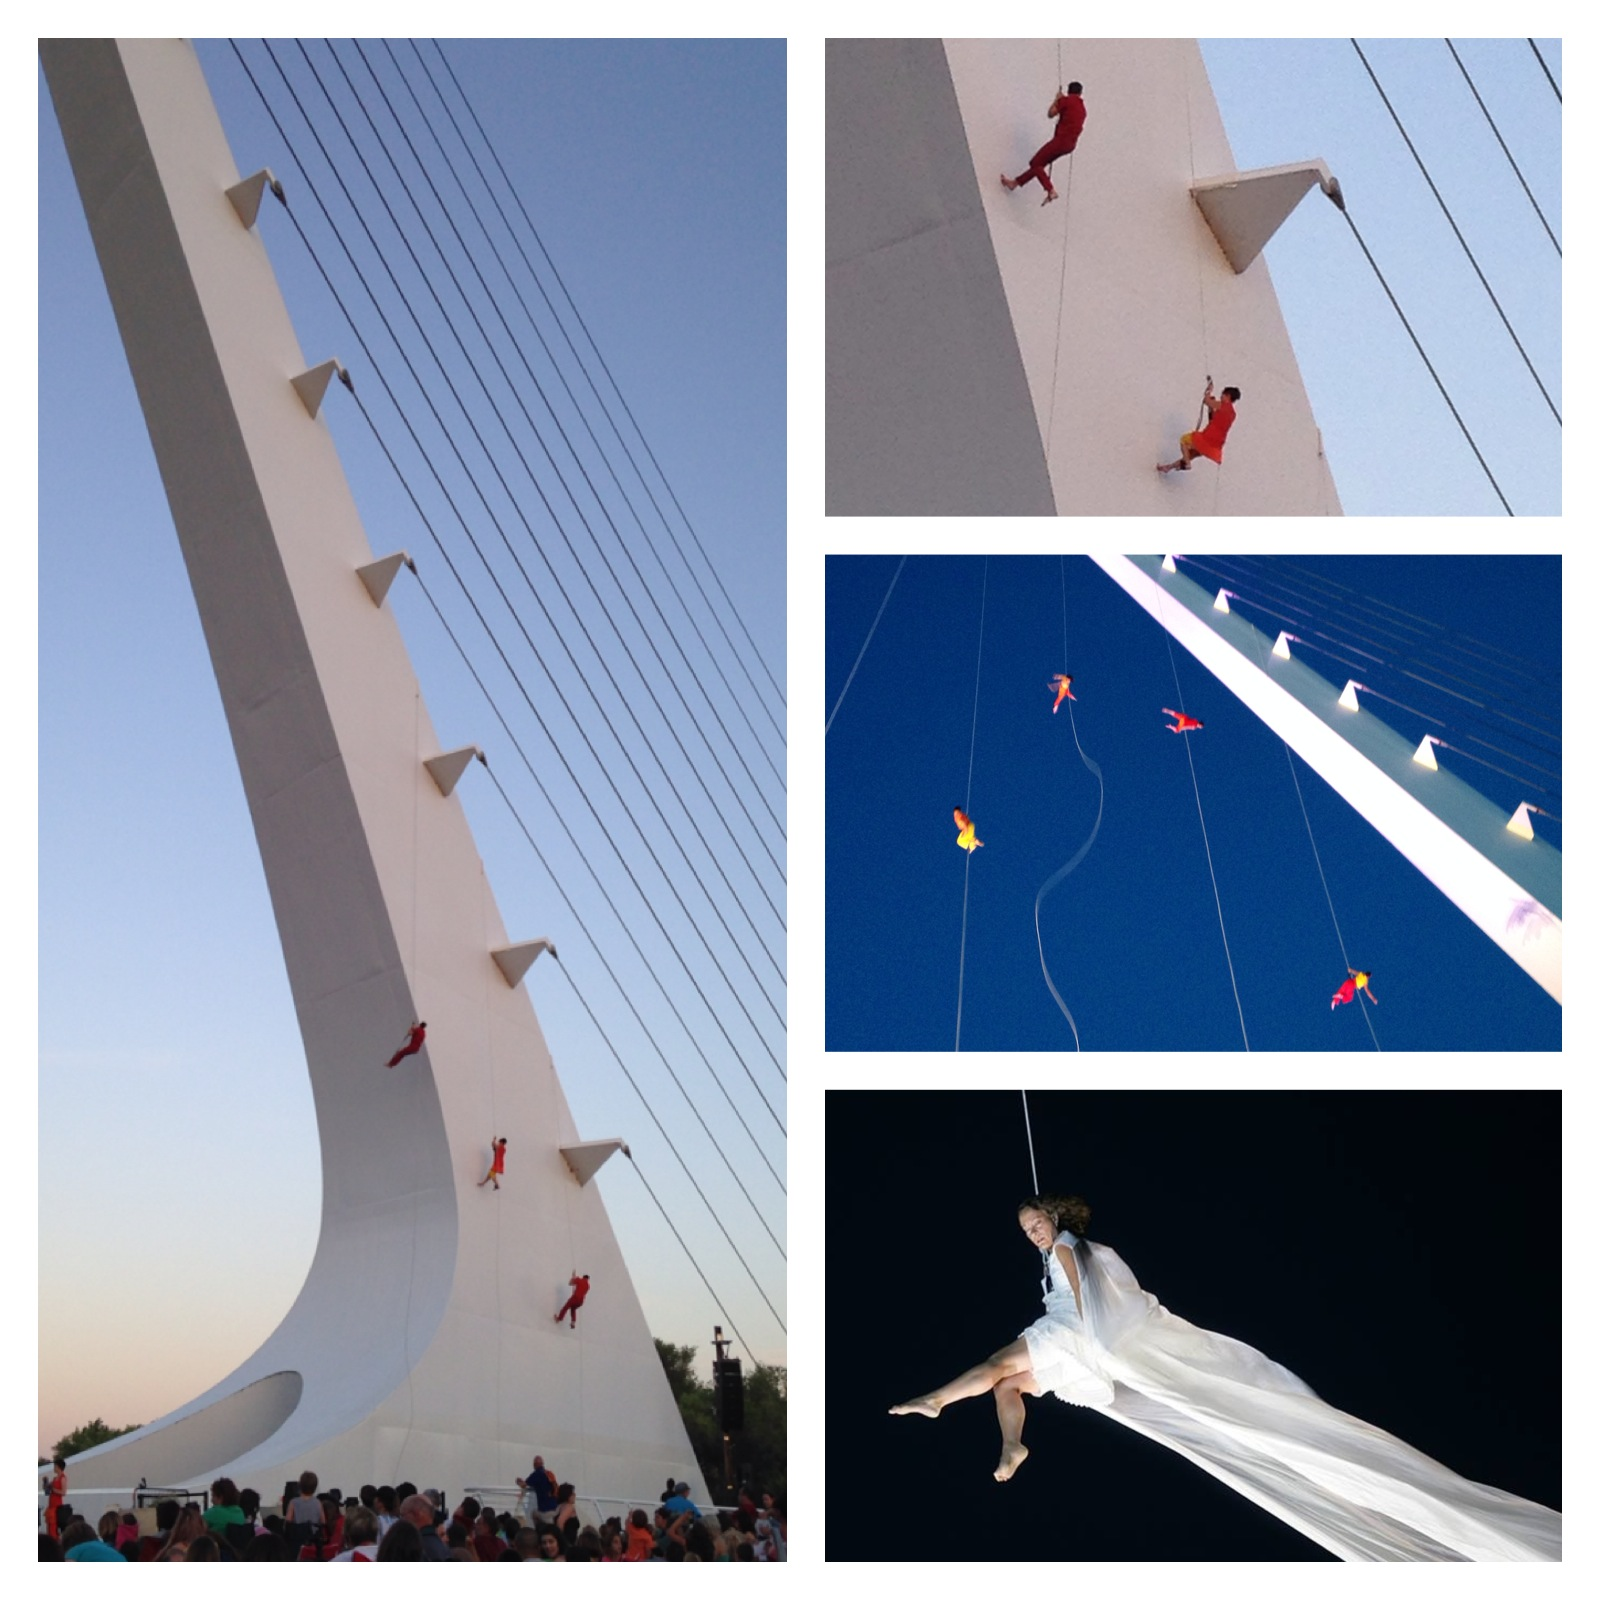 Bandaloop collage